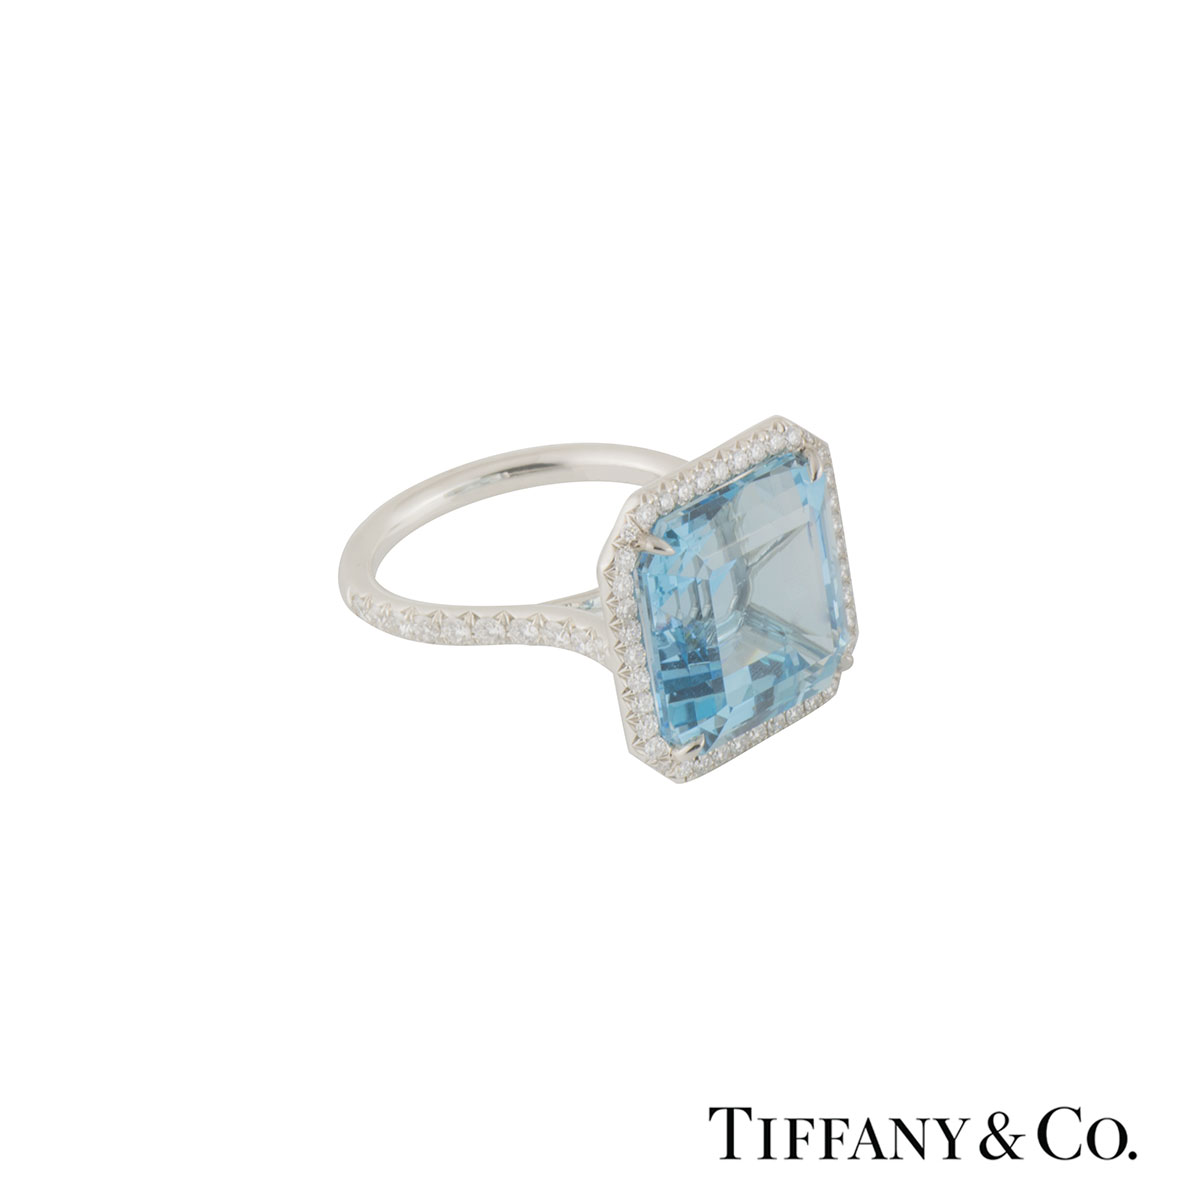 Tiffany & Co. Aquamarine and Diamond Platinum Ring